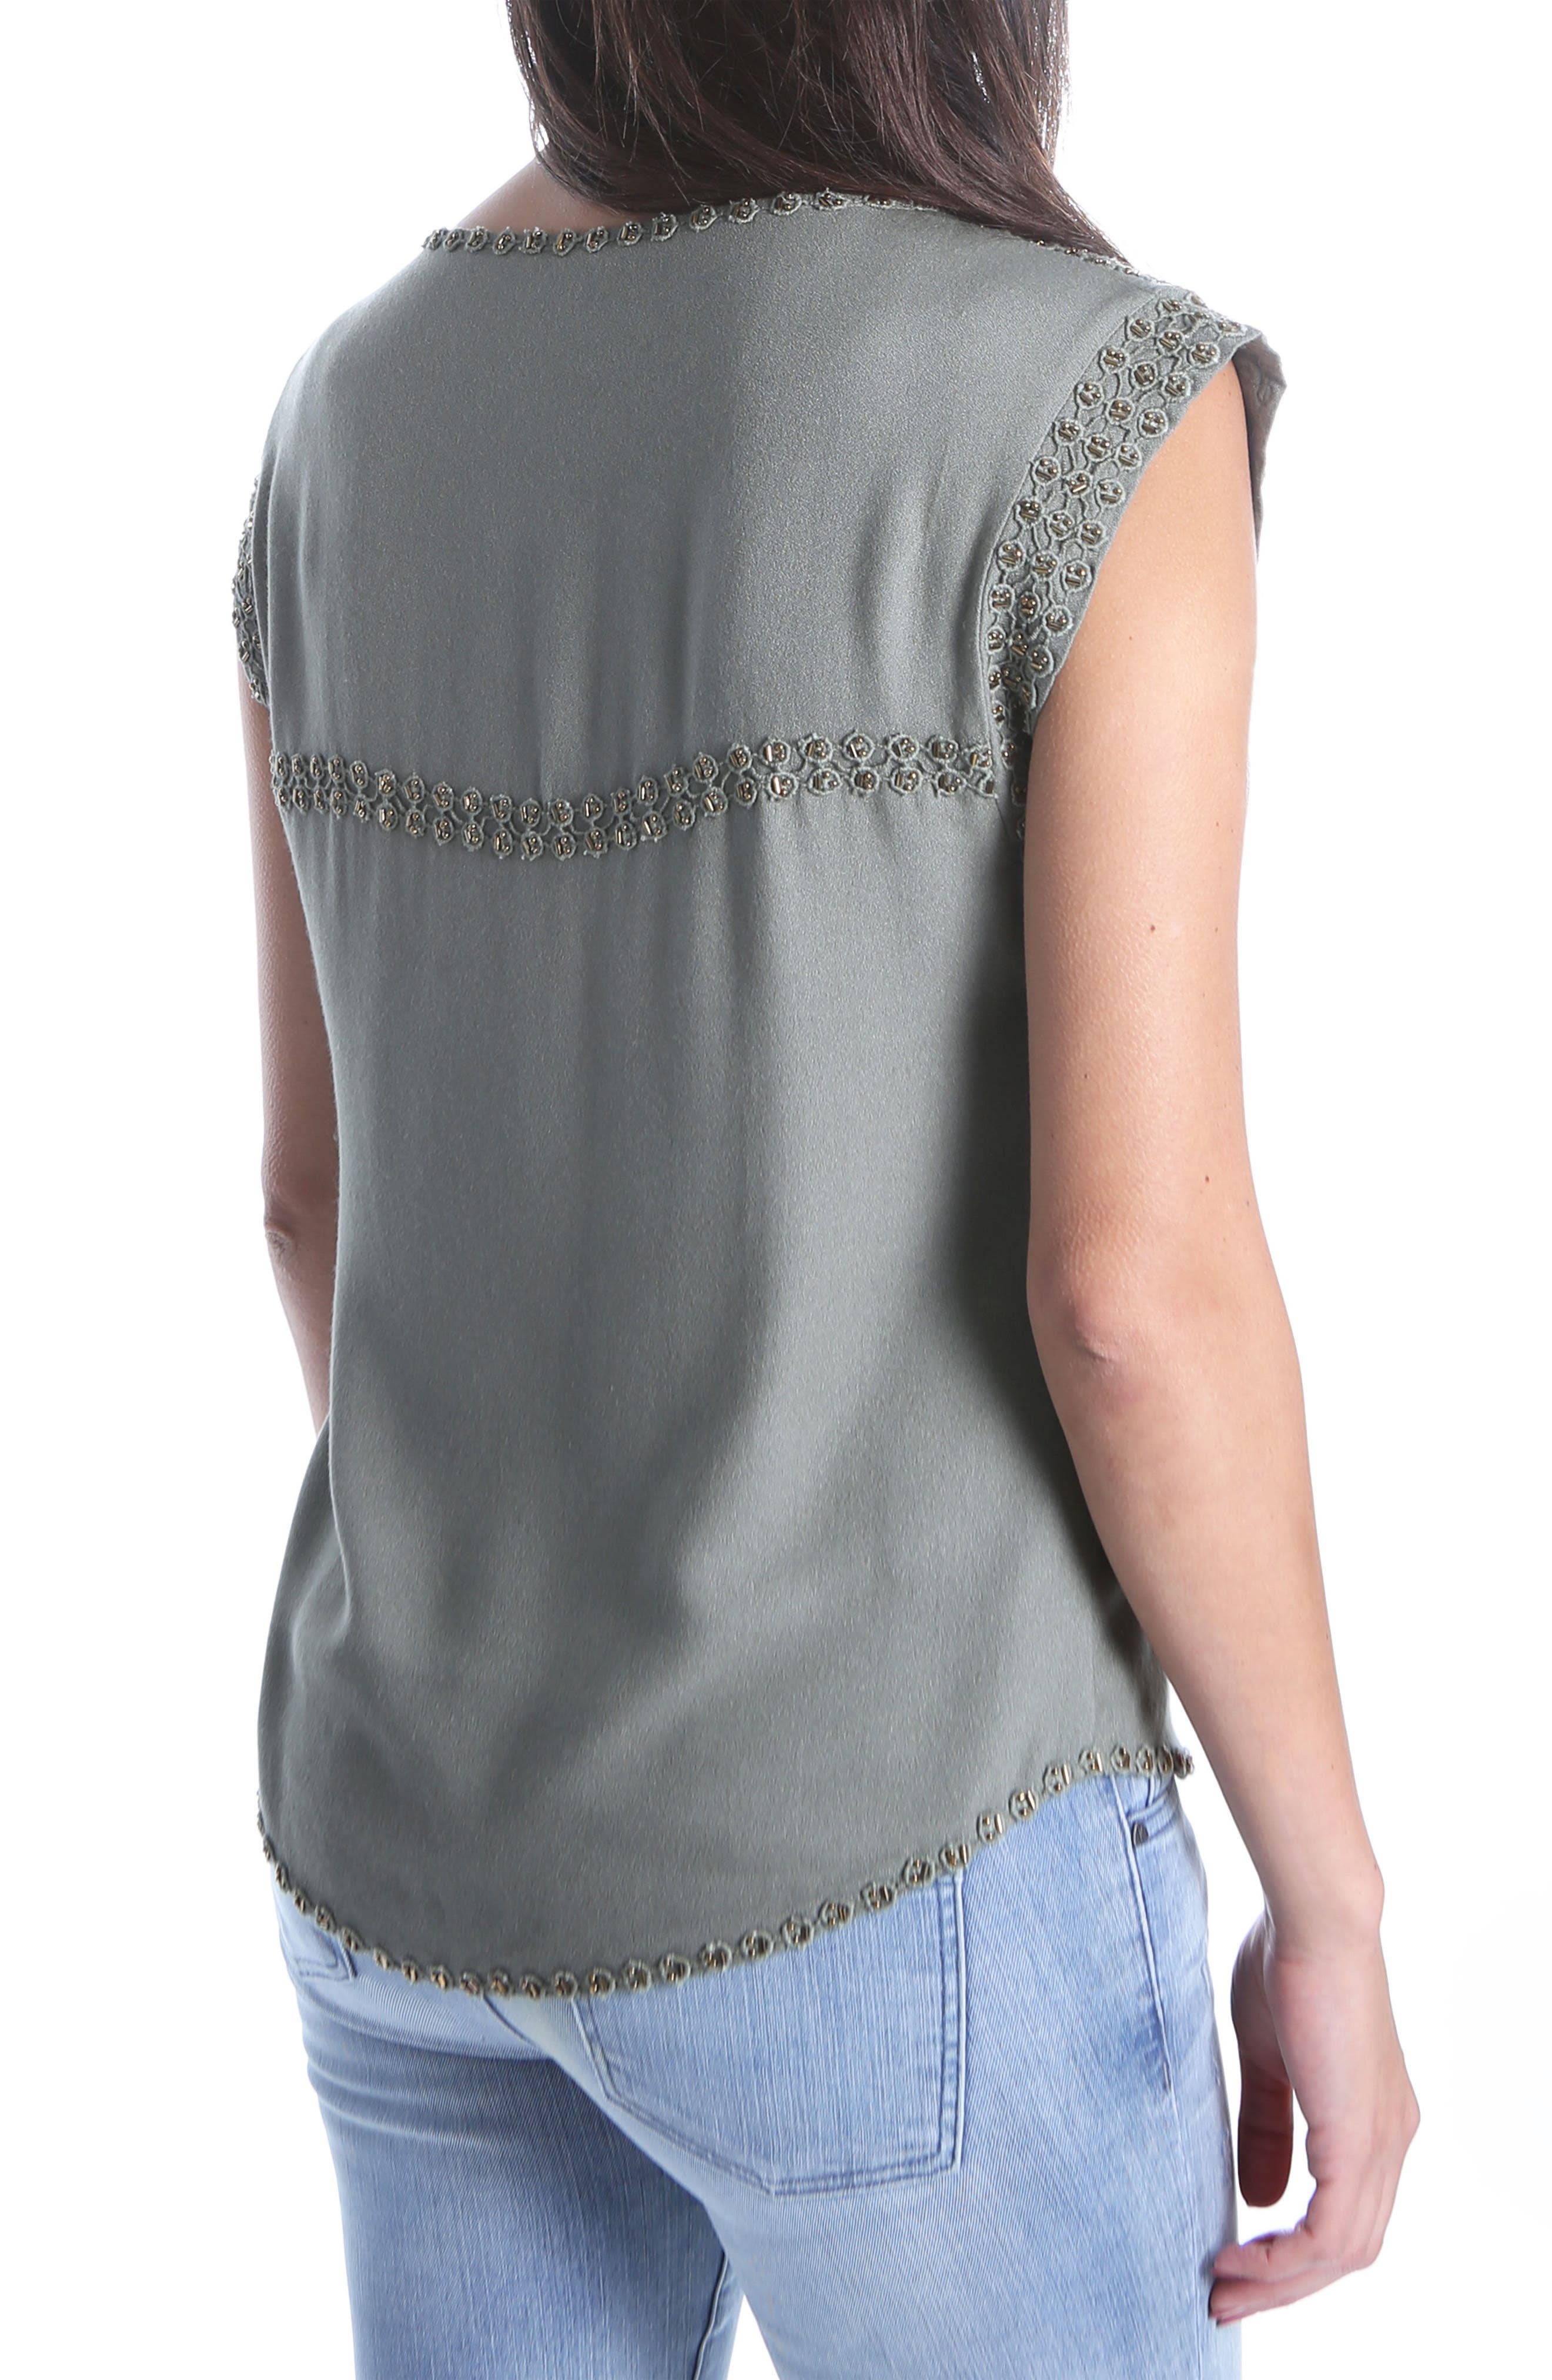 Nenna Embellished Top,                             Alternate thumbnail 2, color,                             317